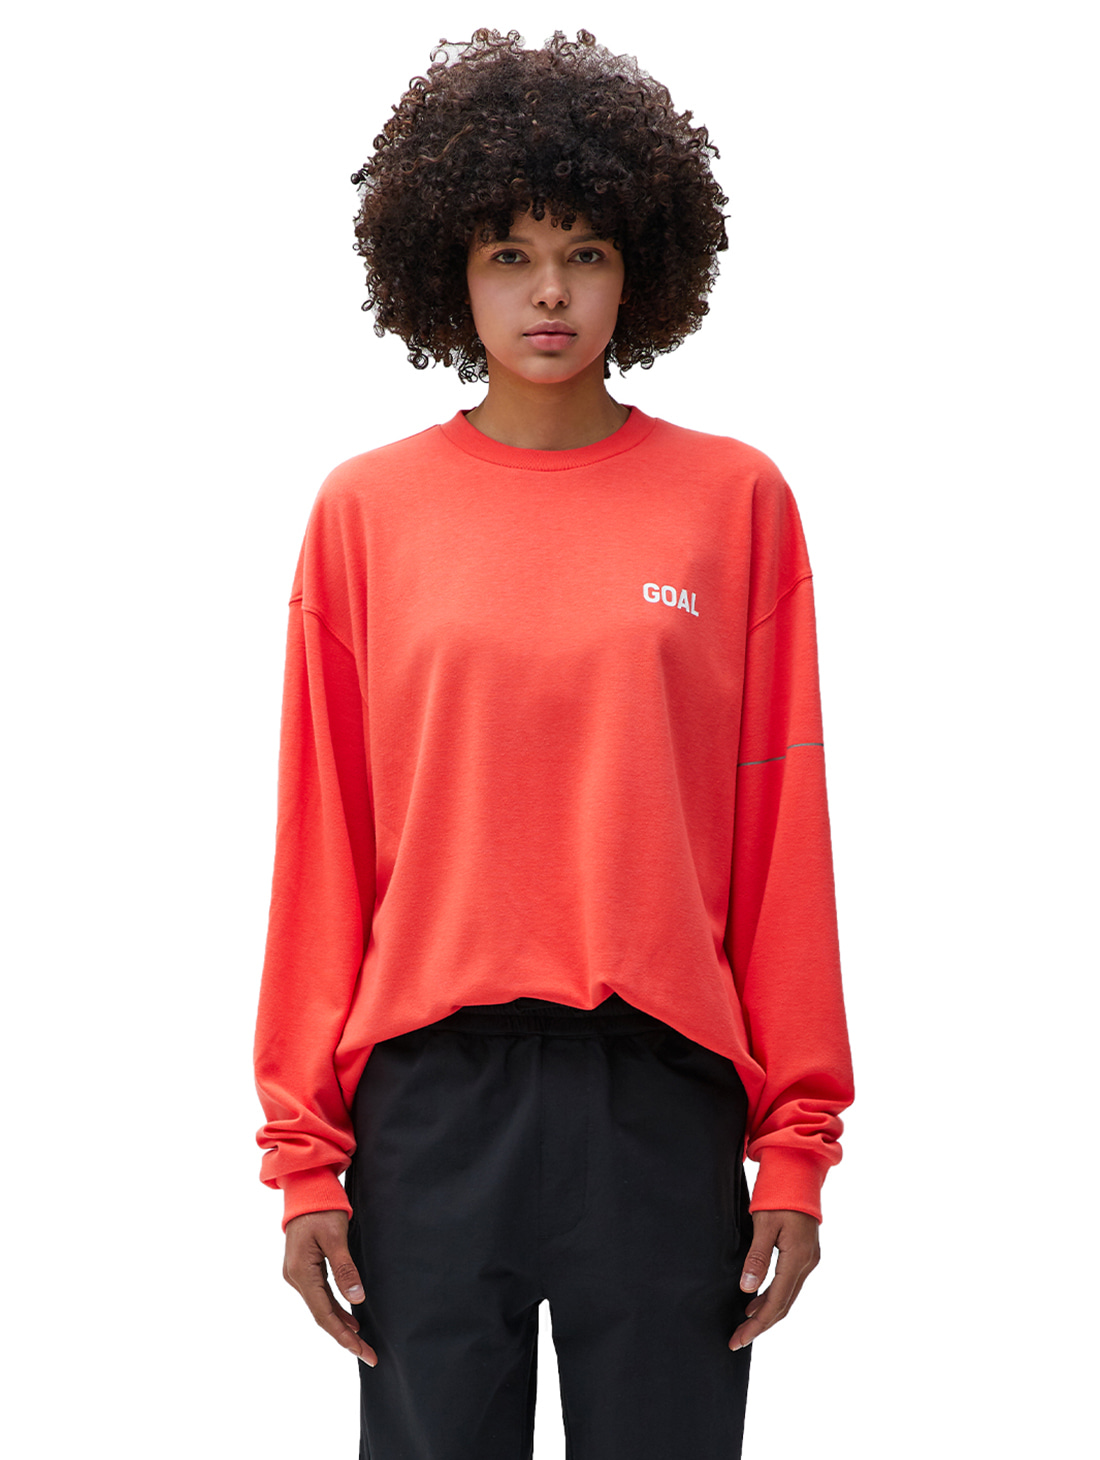 GOALSTUDIO LTG LONG SLEEVE TEE - ORANGE